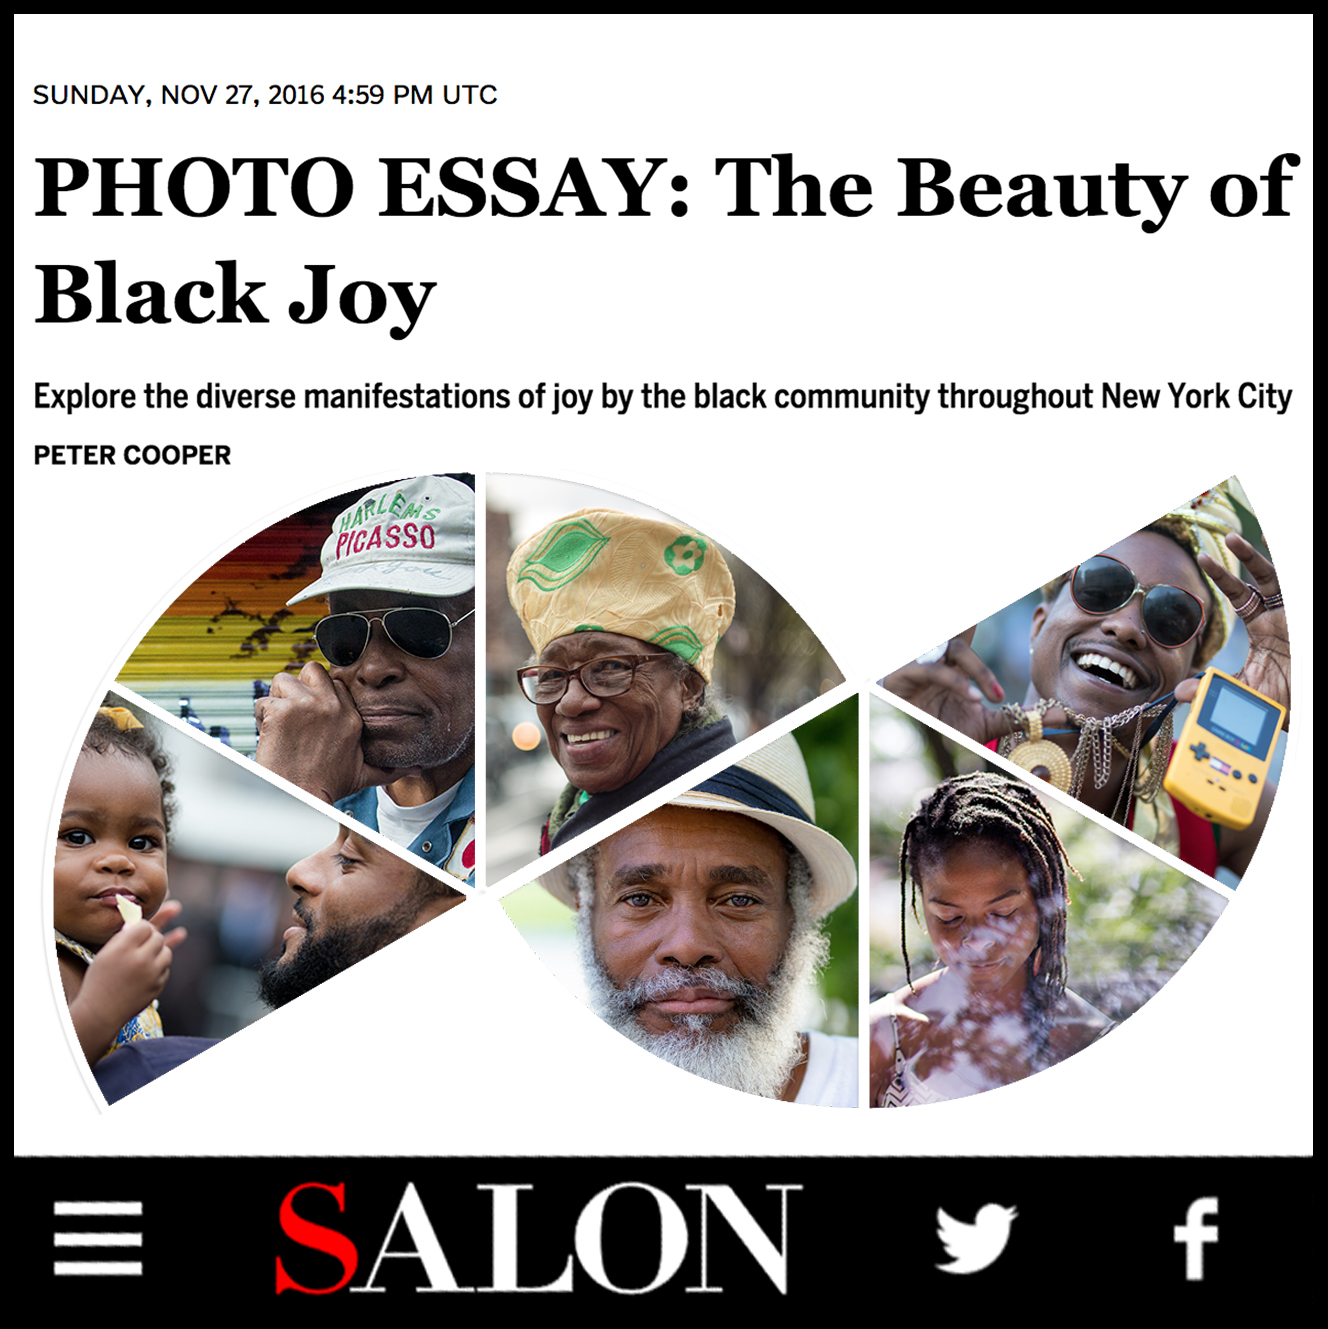 euducation in the black community essay Connect with professionals in your community at conferences, networking events, advocacy efforts, leadership opportunities and more connect advertisement.